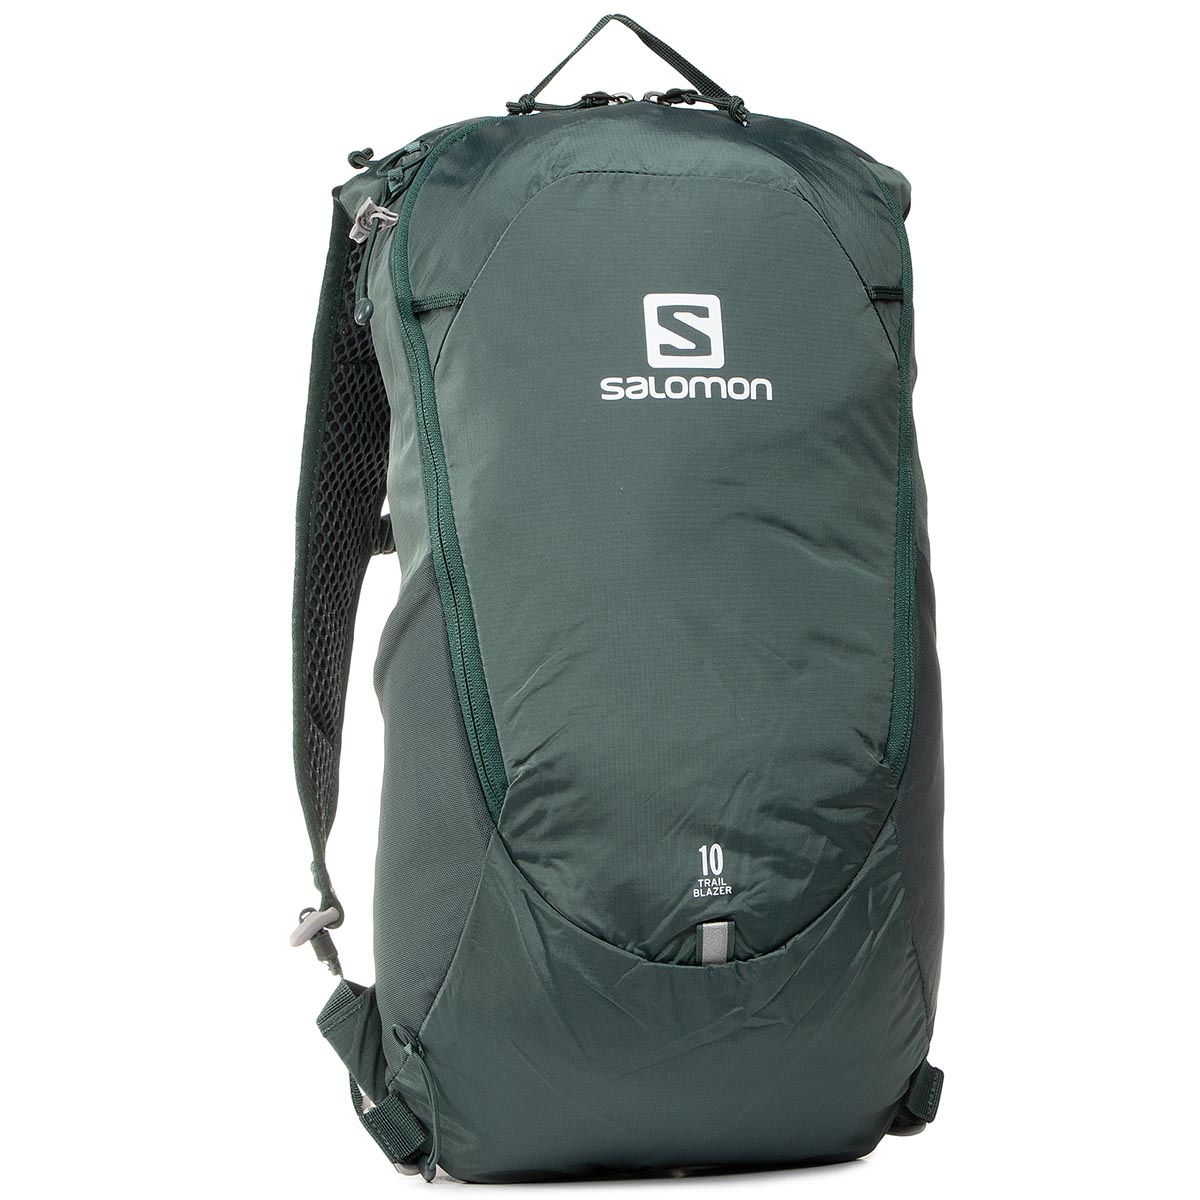 Rucsac SALOMON - Trailblazer 130810 Green Gables